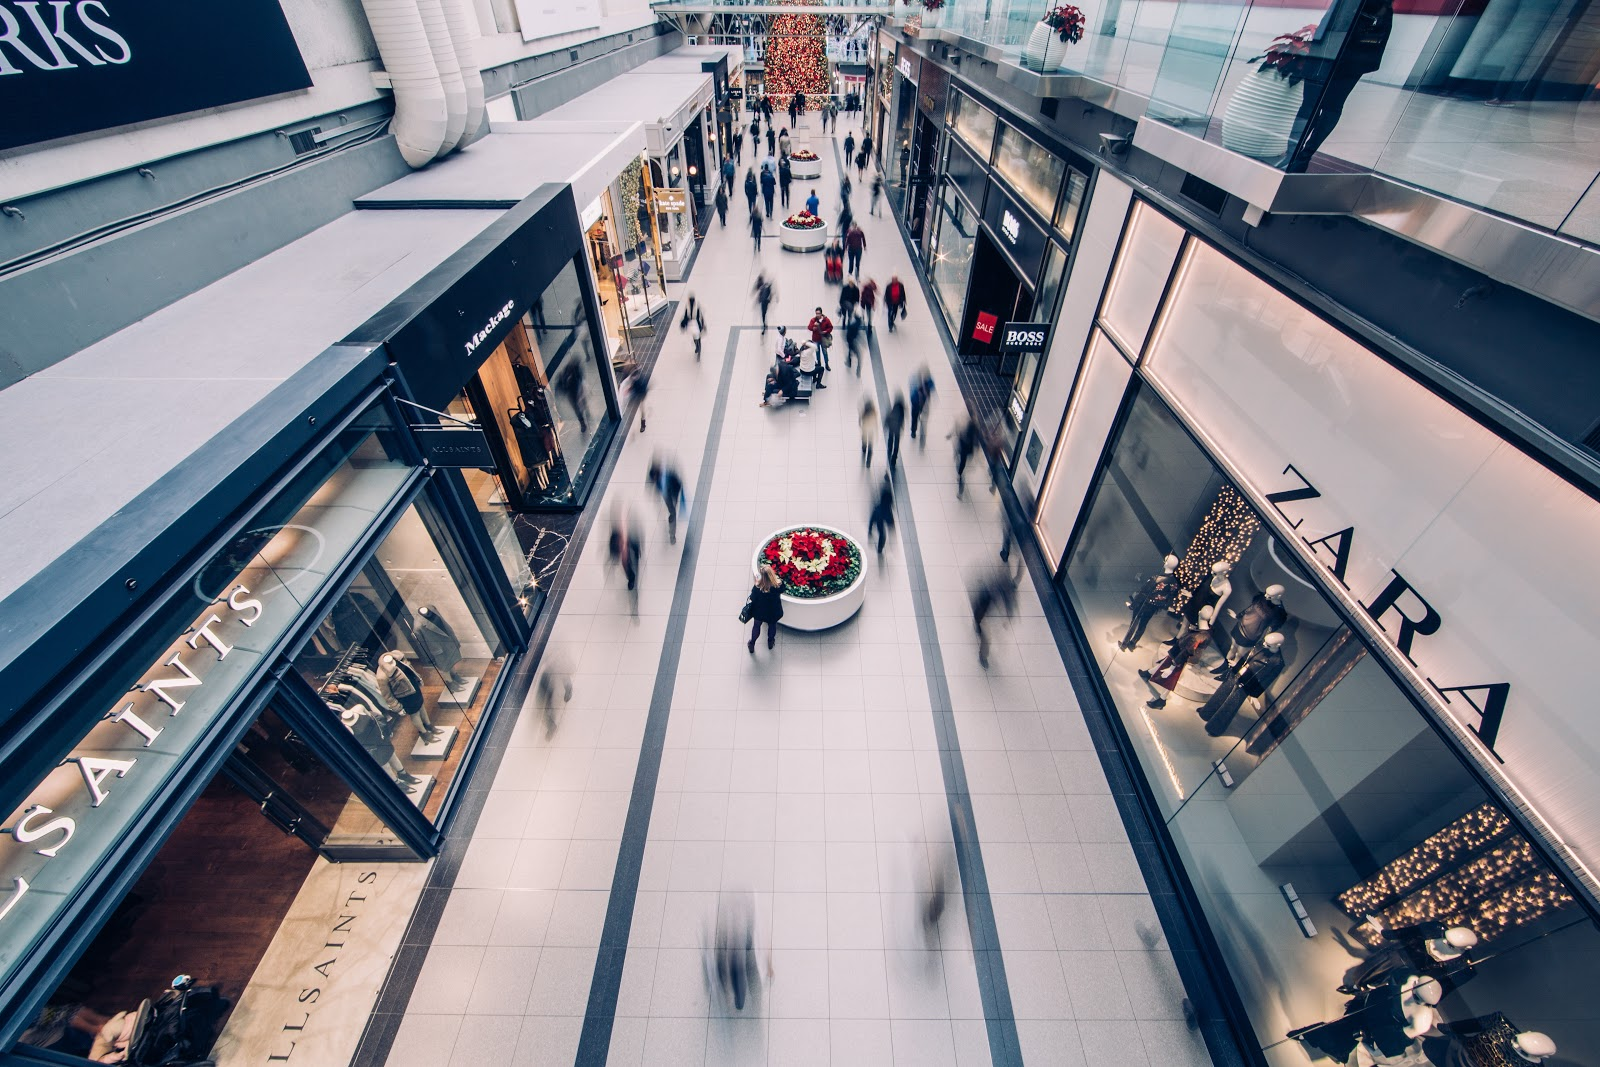 Customers walking,entering stores and shopping in a mall. Zara, Hugo Boss on the right, AllSaints, Mackage store on the left.